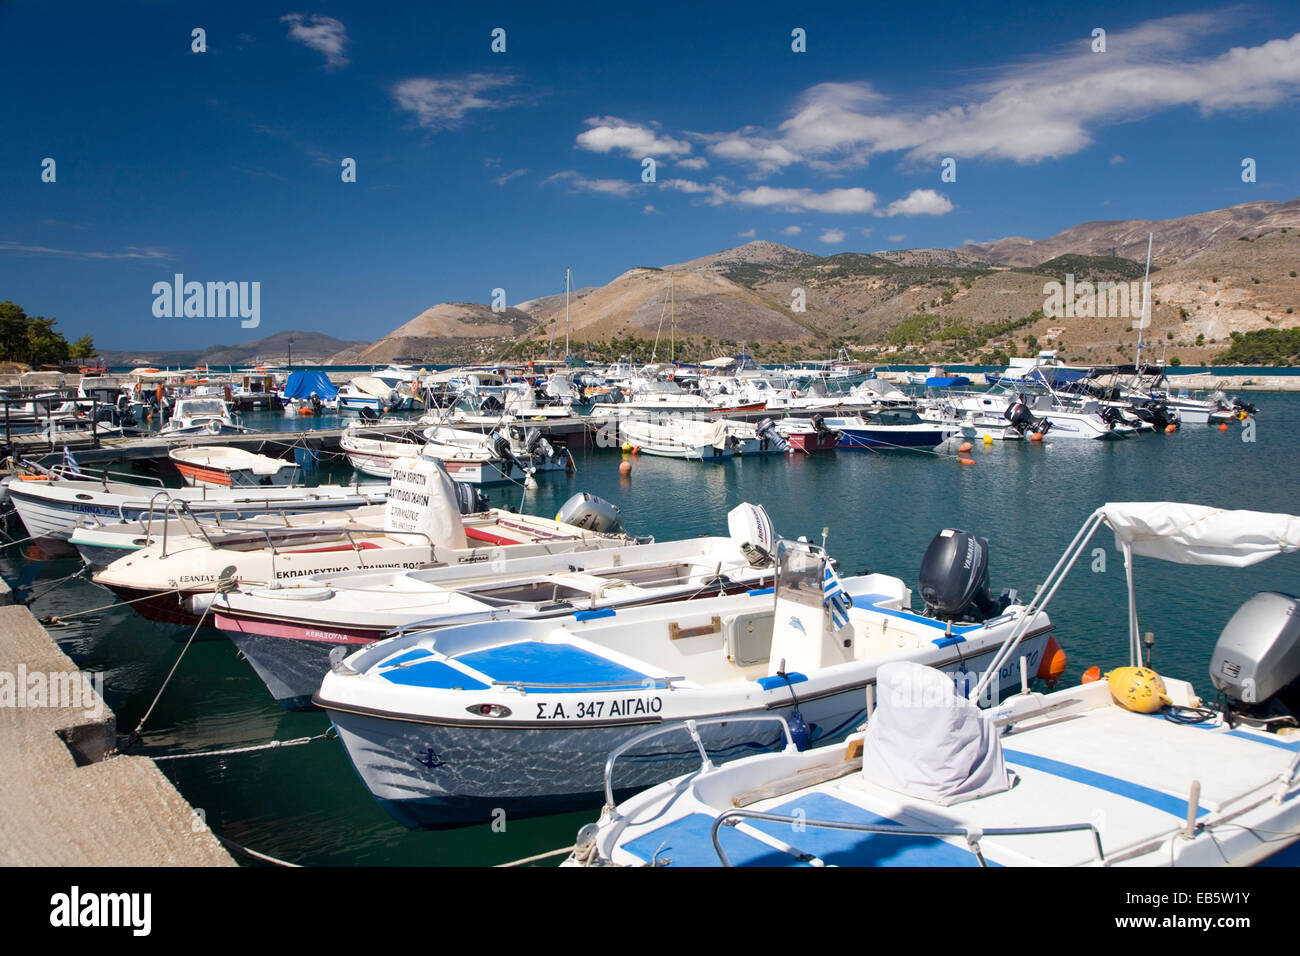 Argostoli, Kefalonia, Ionian Islands, Greece. View across the harbour. - Stock Image